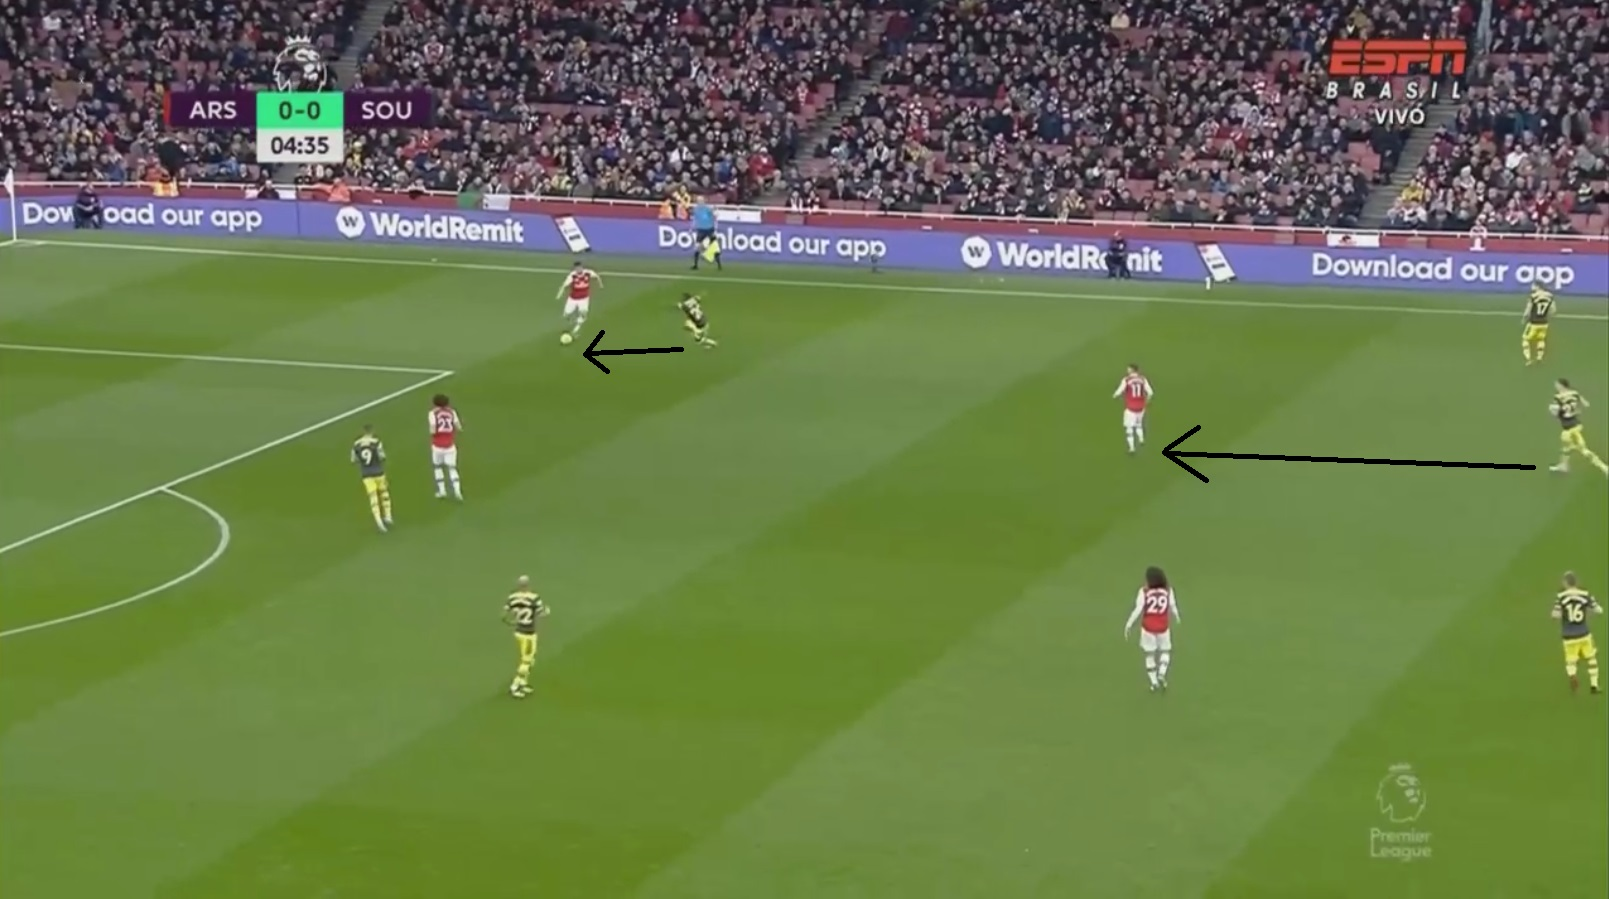 Premier League 2019/20: Arsenal v Southampton - tactical analysis tactics